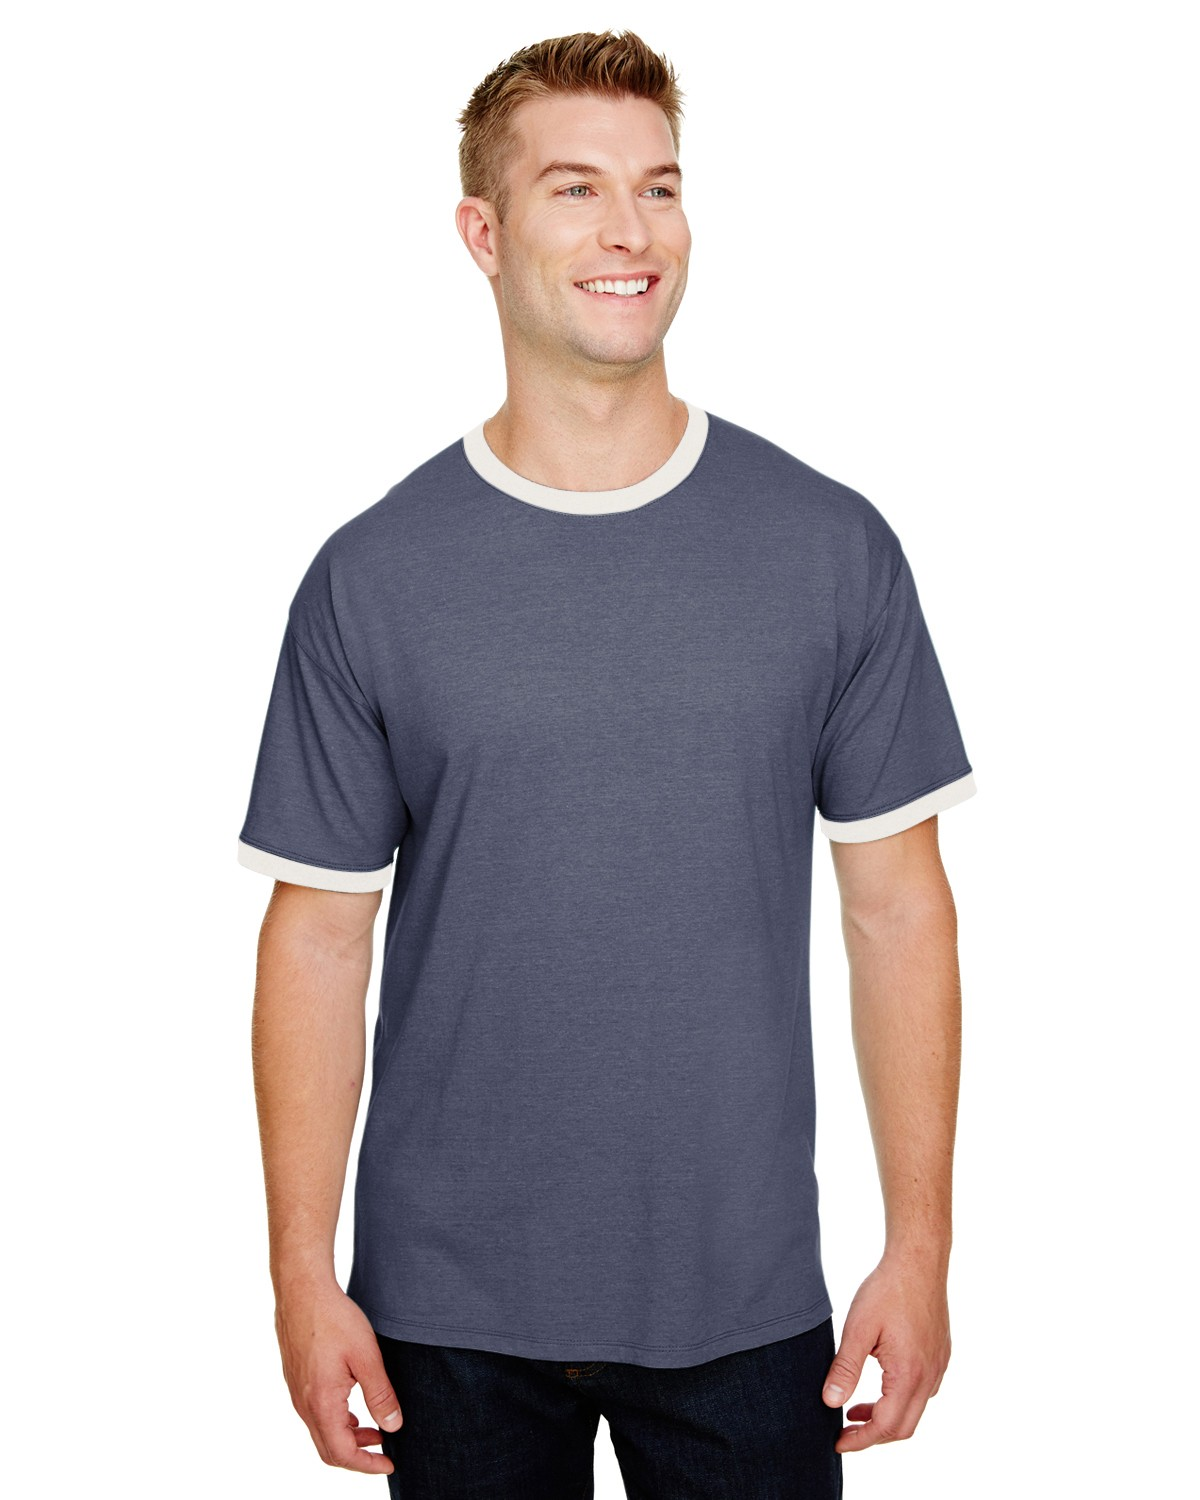 CP65 Champion NAVY HTH/ CHK WH